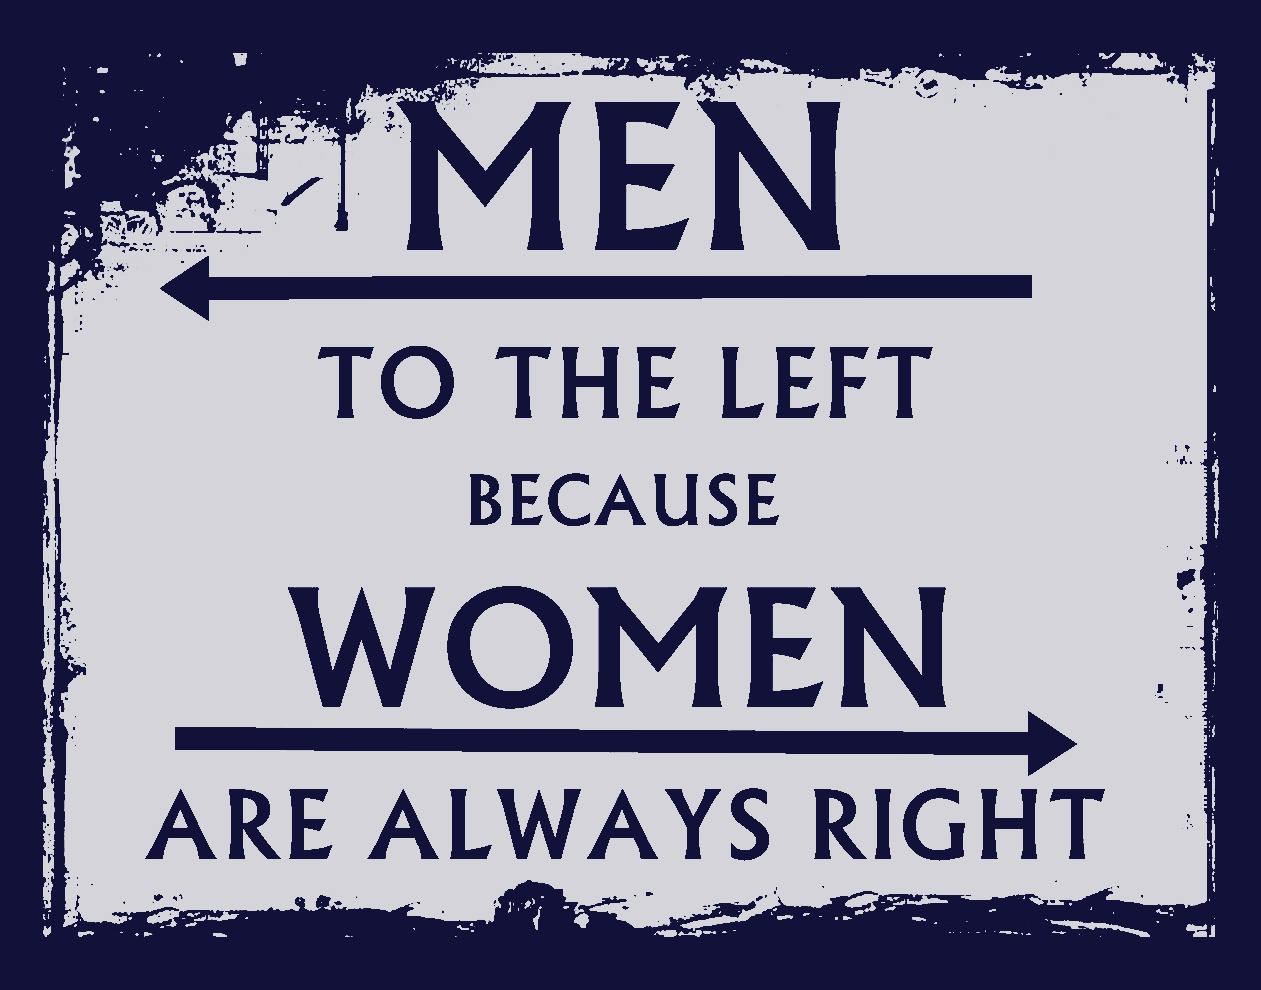 Arleyart Com Women Are Always Right Funny Bathroom Sign Humorous